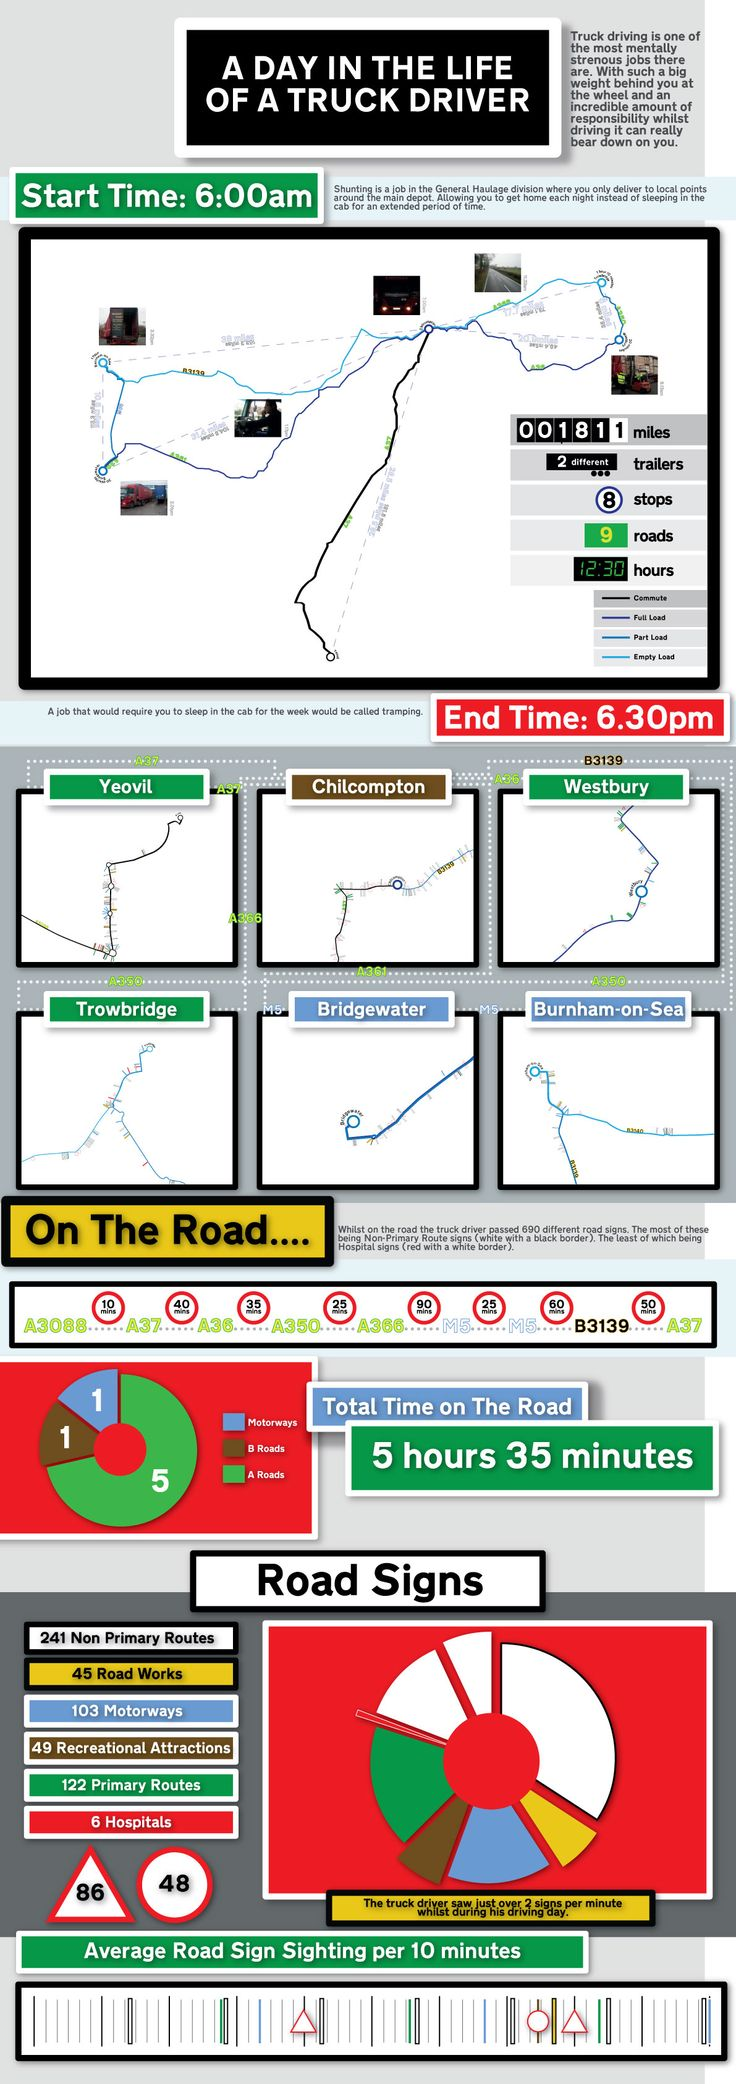 A day in the life of a truck driverTrucks Driverinfograph,  Internet Site, Final Major,  Website, Trucker Life, Web Site, Major Projects, Infografia Curiosas, Trucks Driver Infographic